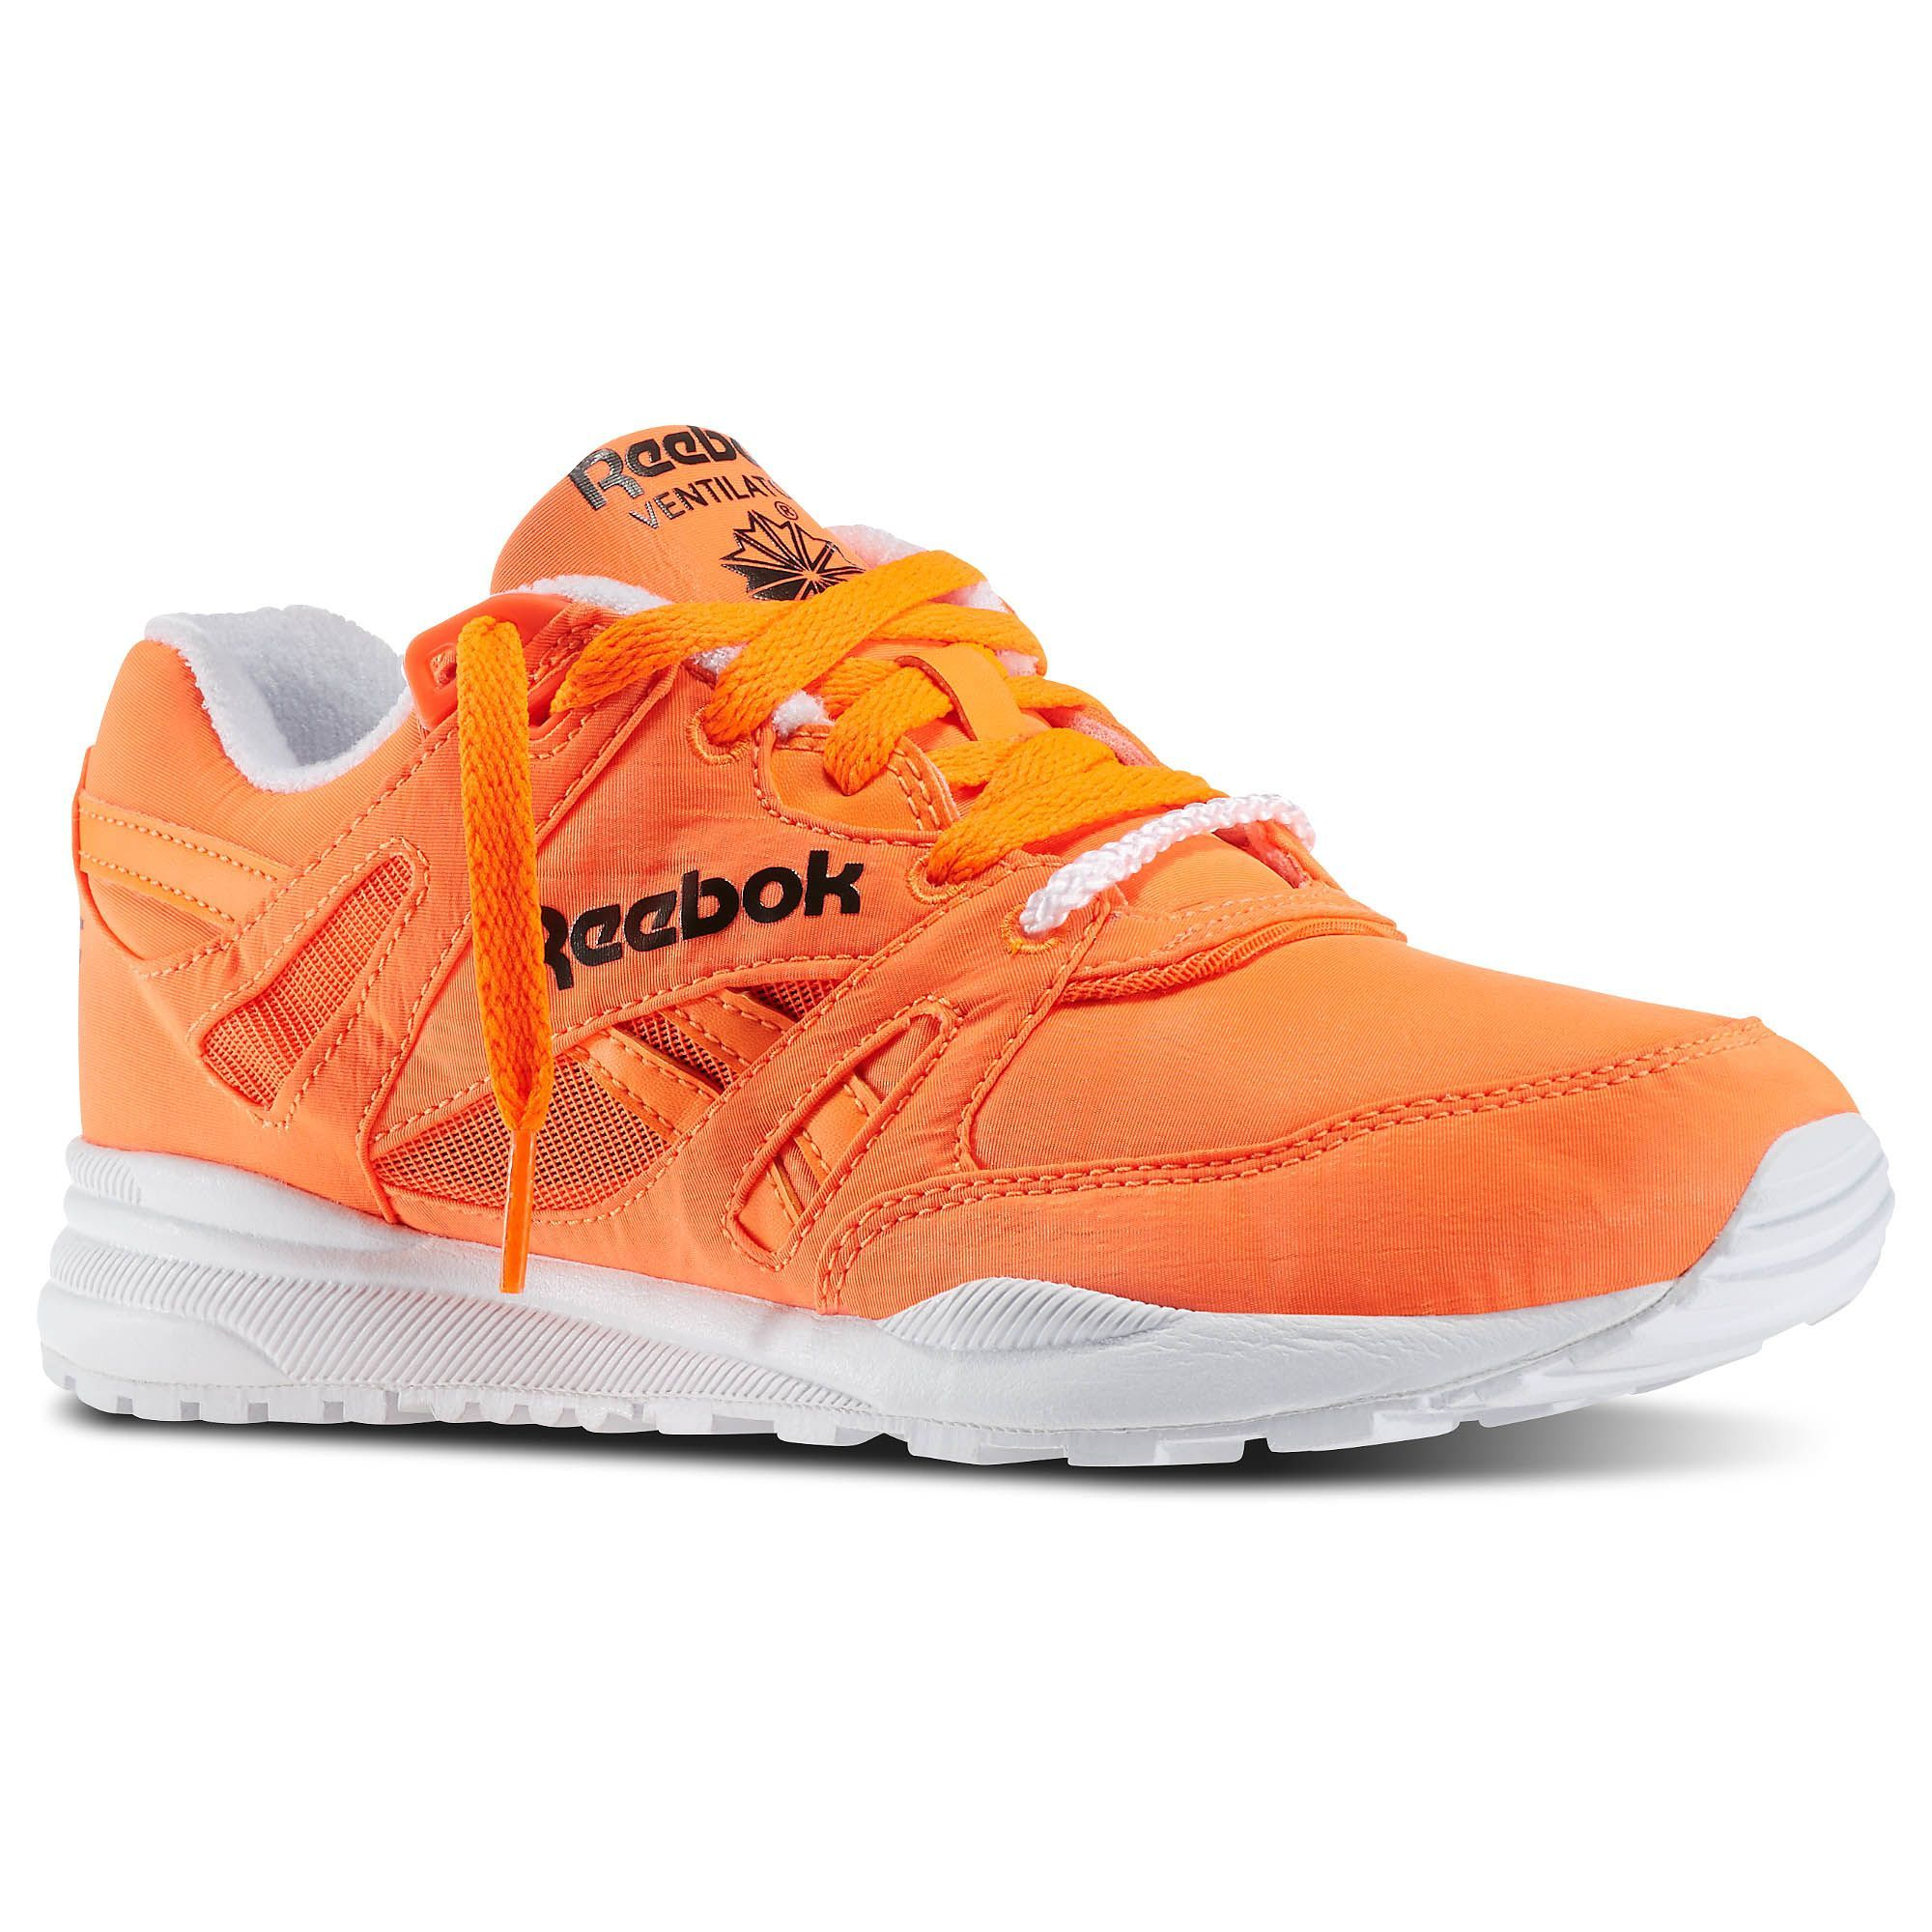 ab0d0869b39 Reebok Ventilator Neon - Orange